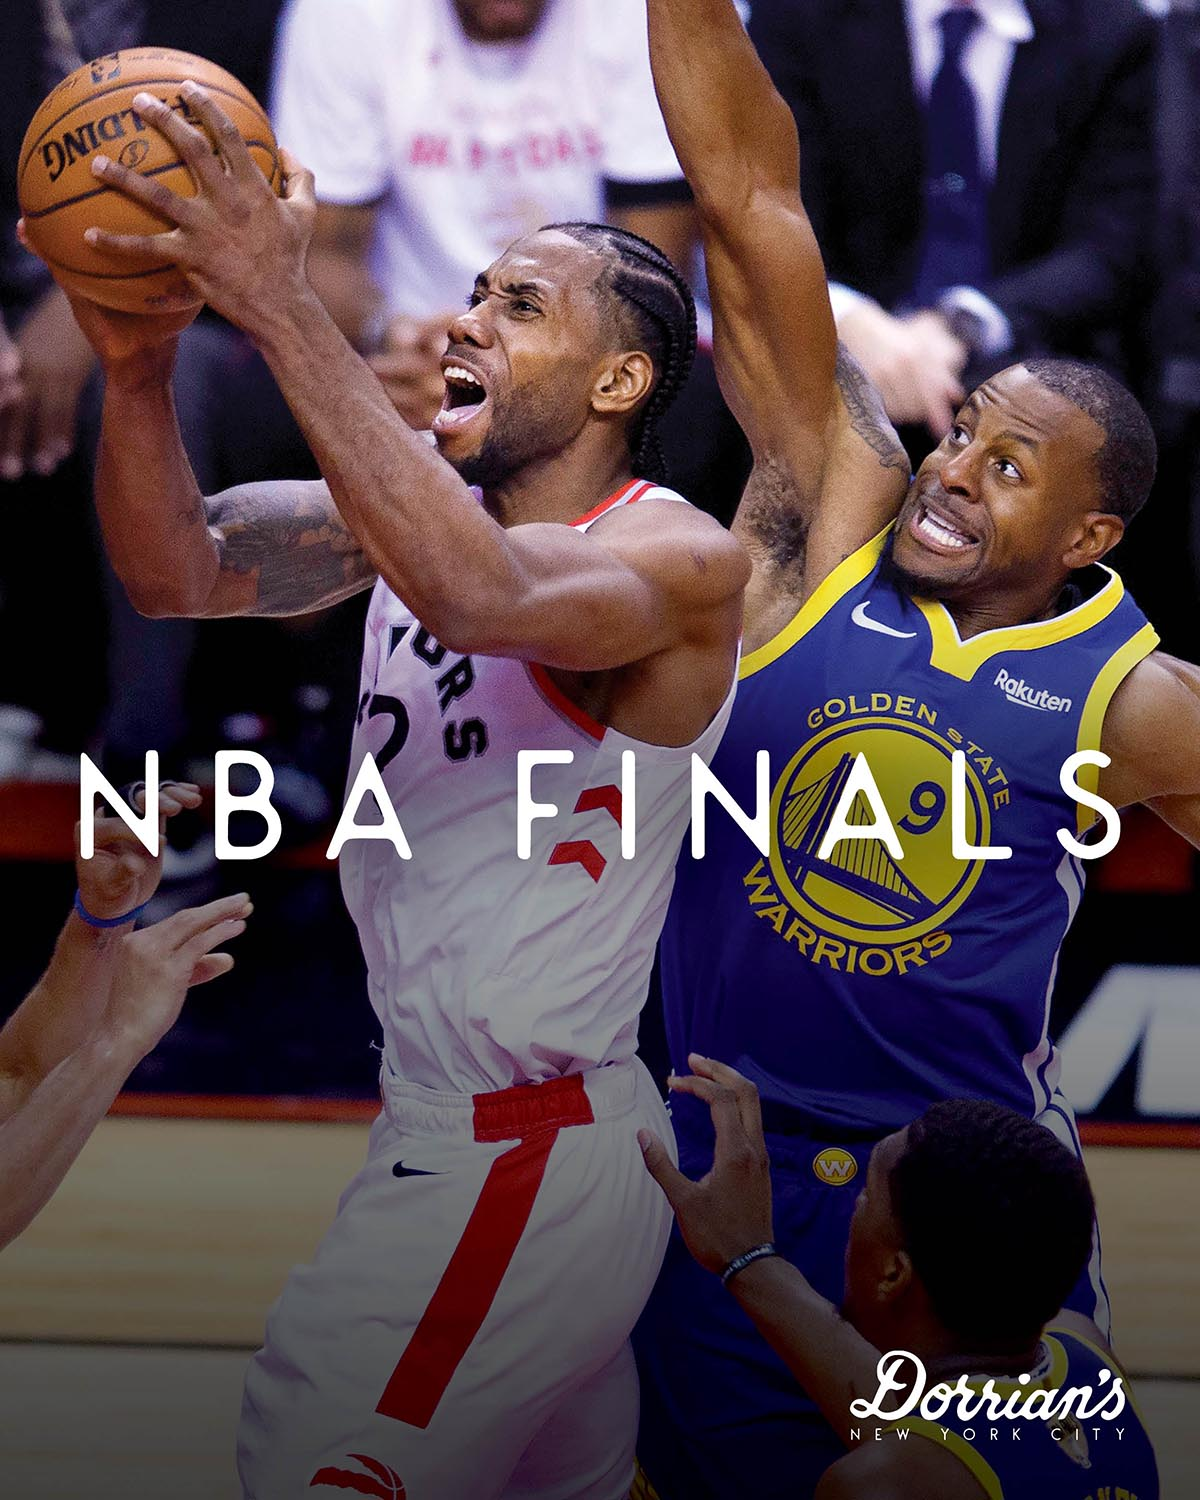 drh_nyc-2019-insta-sports-nba-finals-1500.jpg